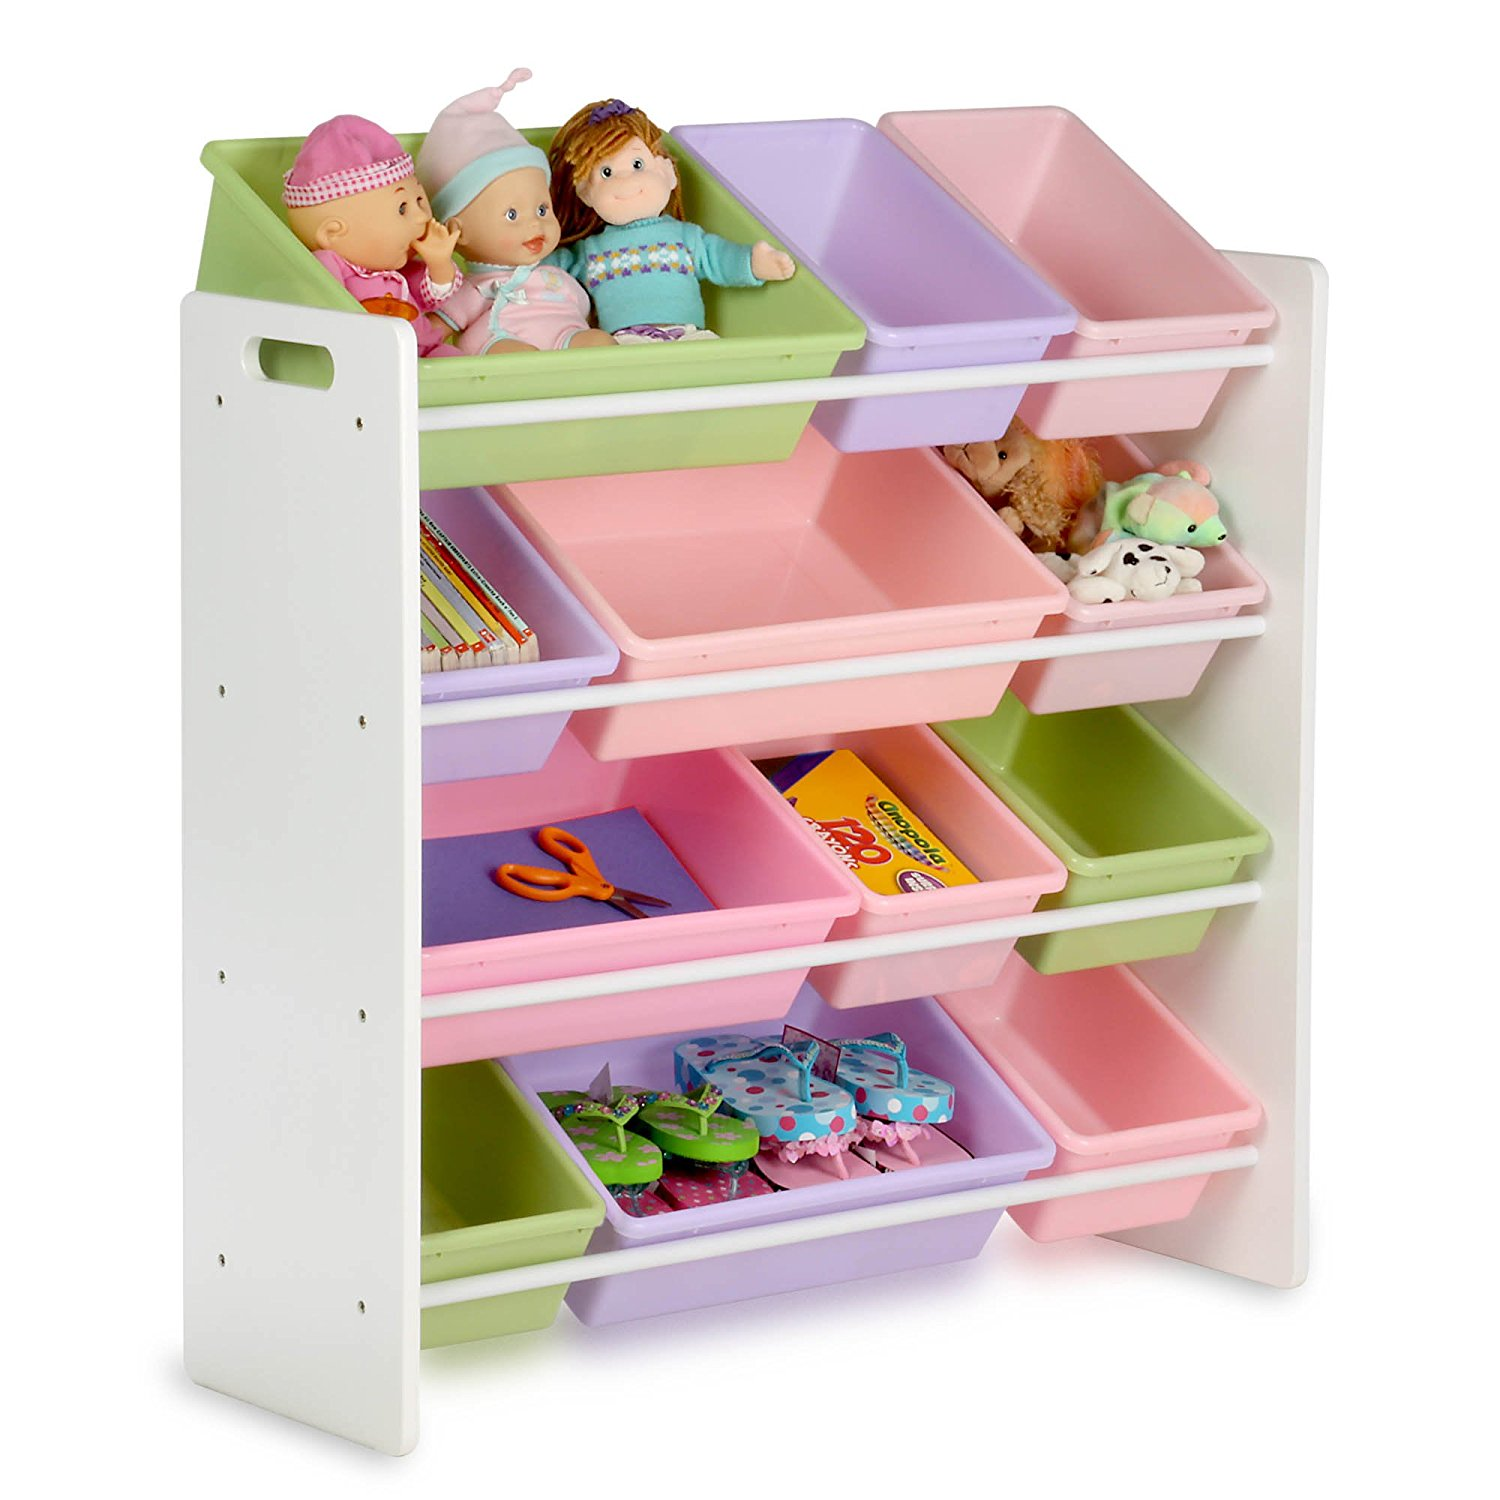 Honey-Can-Do SRT-01603 Kids Toy Organizer and Storage Bins  sc 1 st  Kids Toys News & Top 10 Best Selling Home Kids Toy Storage Organizer - Kids Toys News